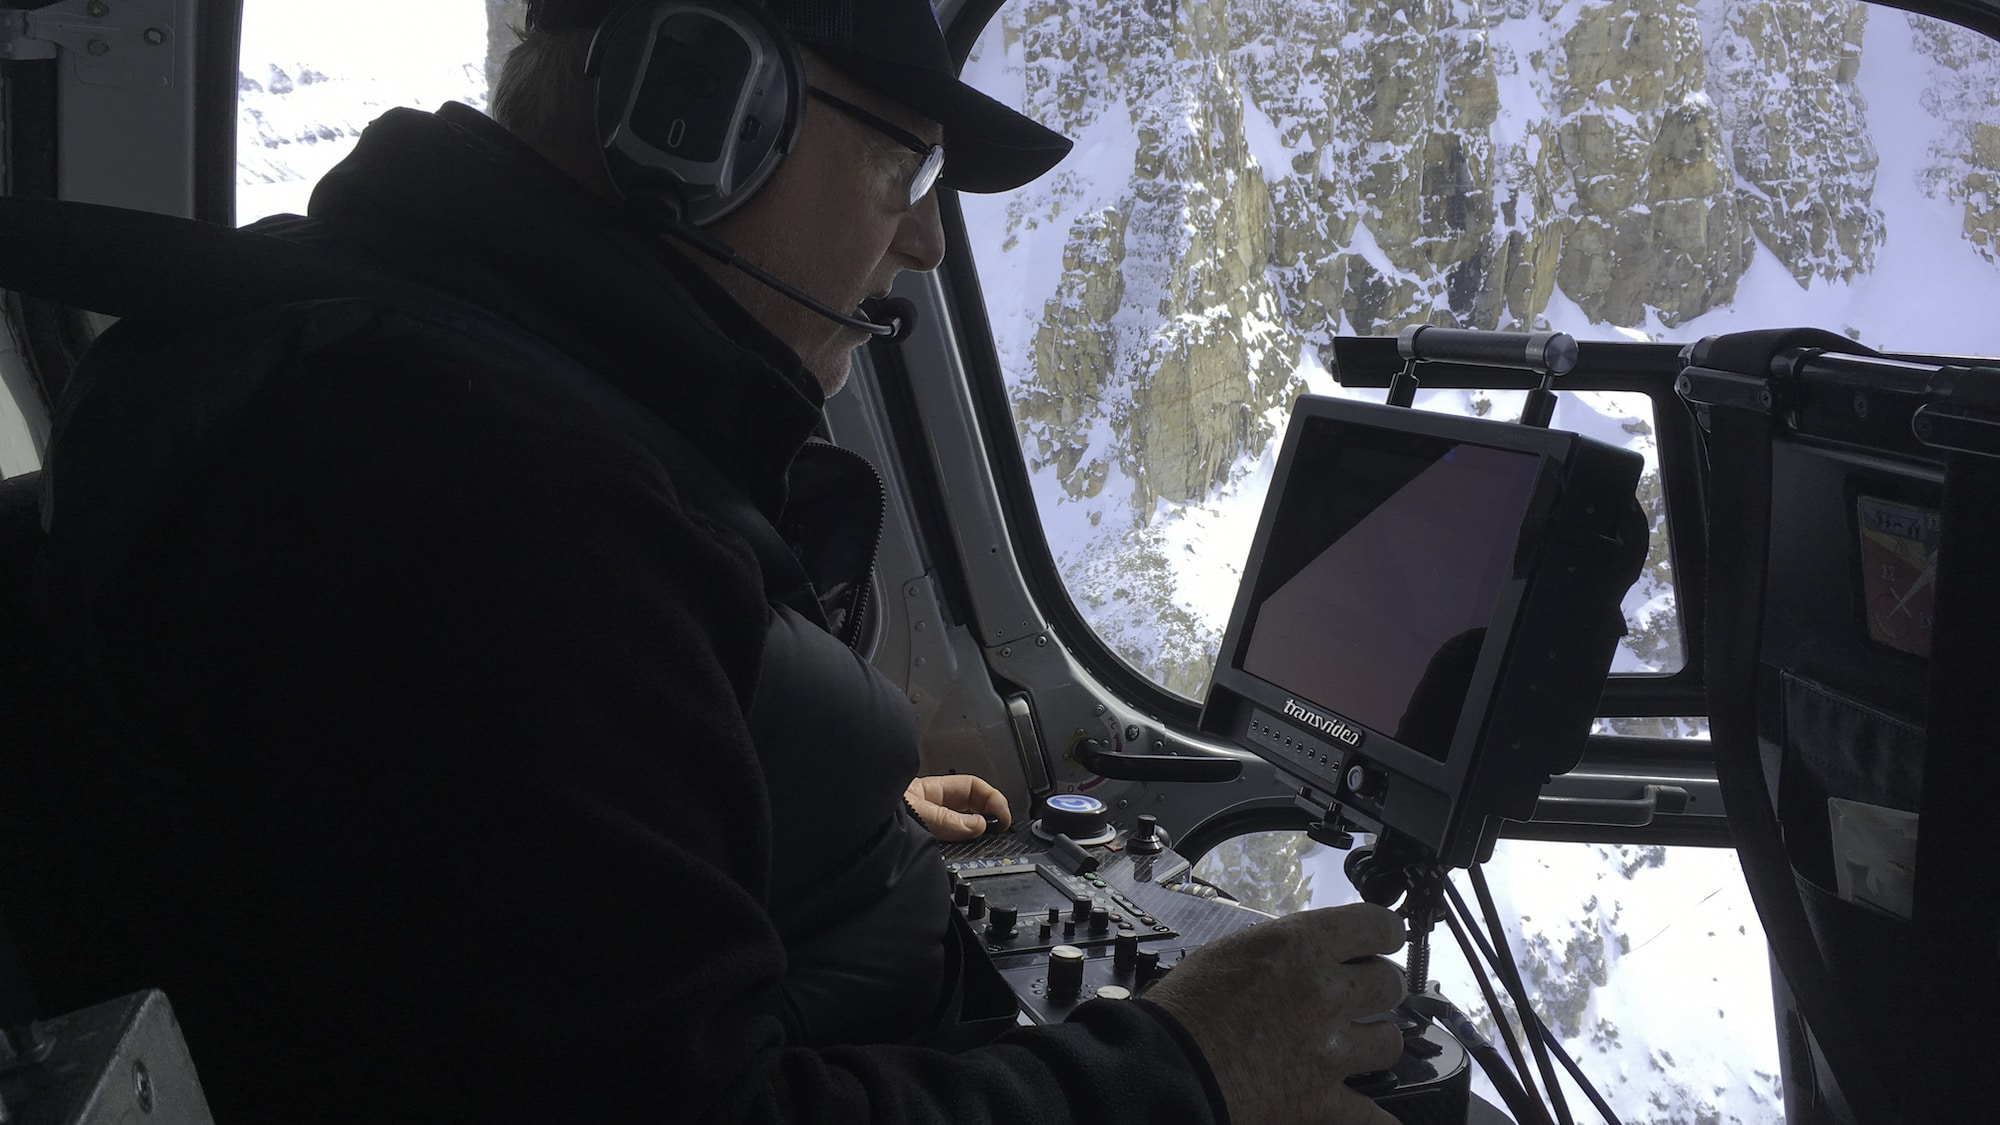 Aerial cinematographer Thomas Miller films elusive Arctic whales with a specialty camera stabilizer called a Cineflex. (National Geographic for Disney+/Thomas Miller)